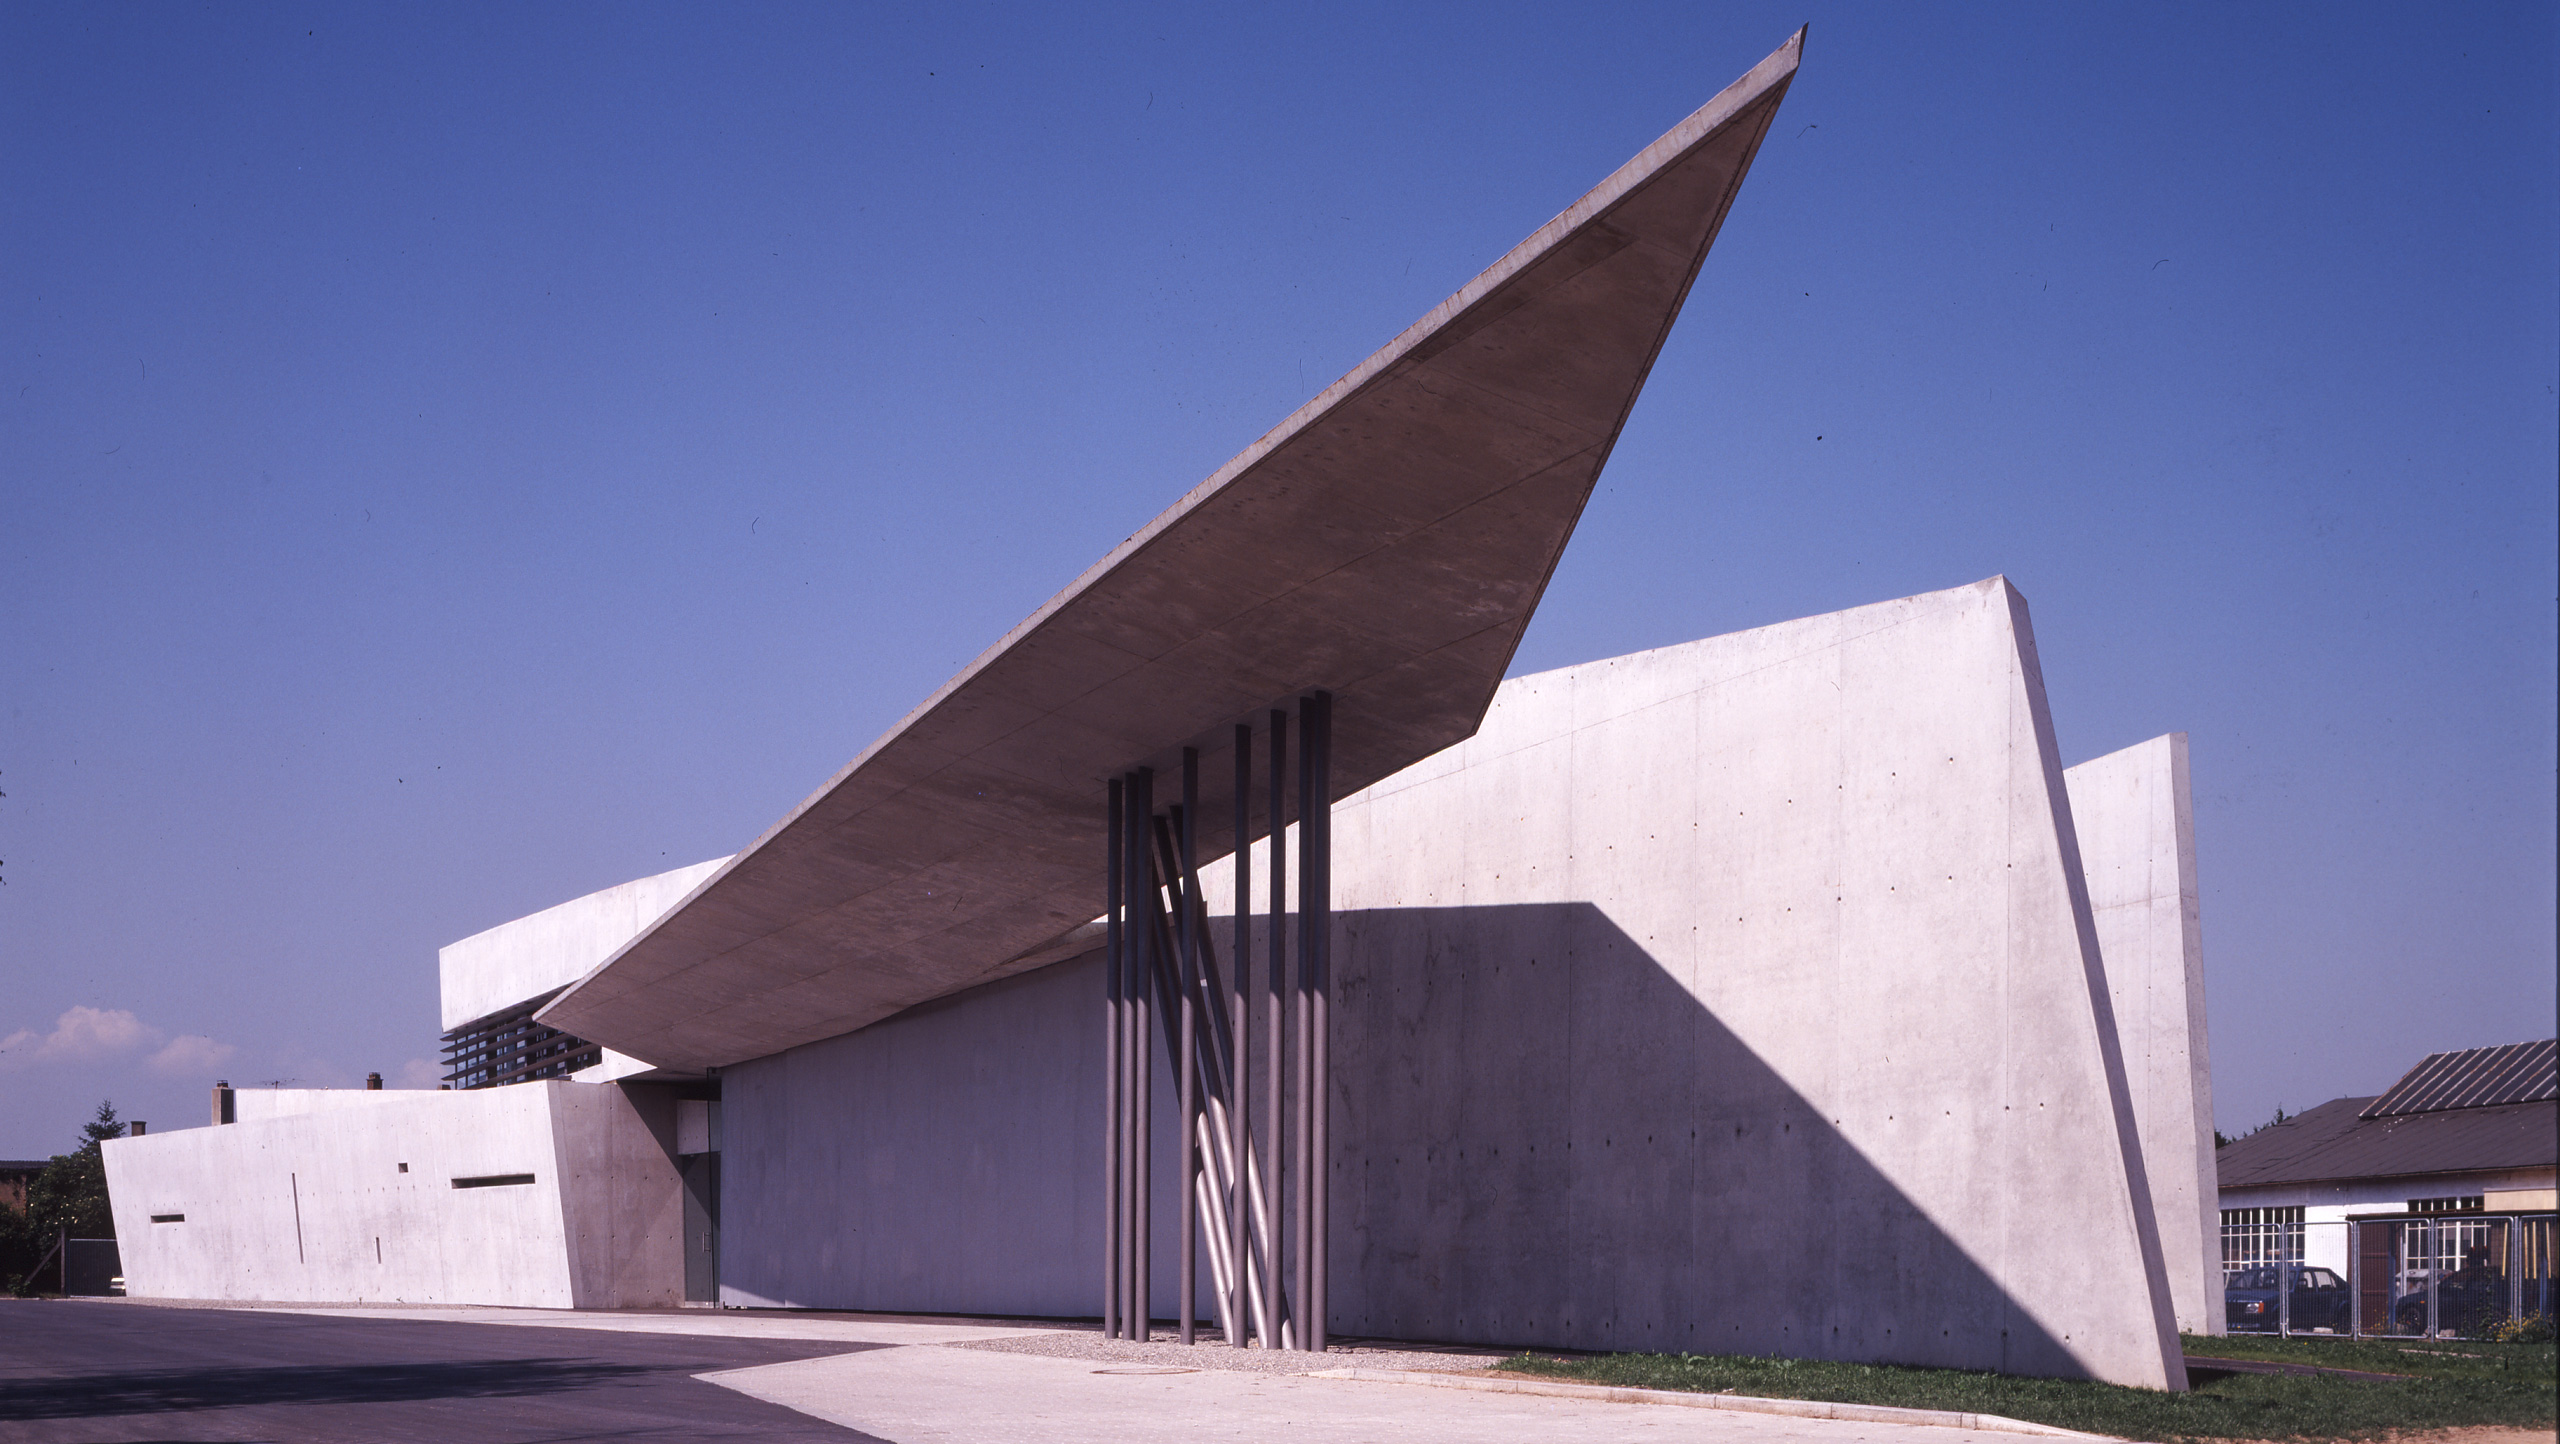 Vitra Fire Station by Zaha Hadid